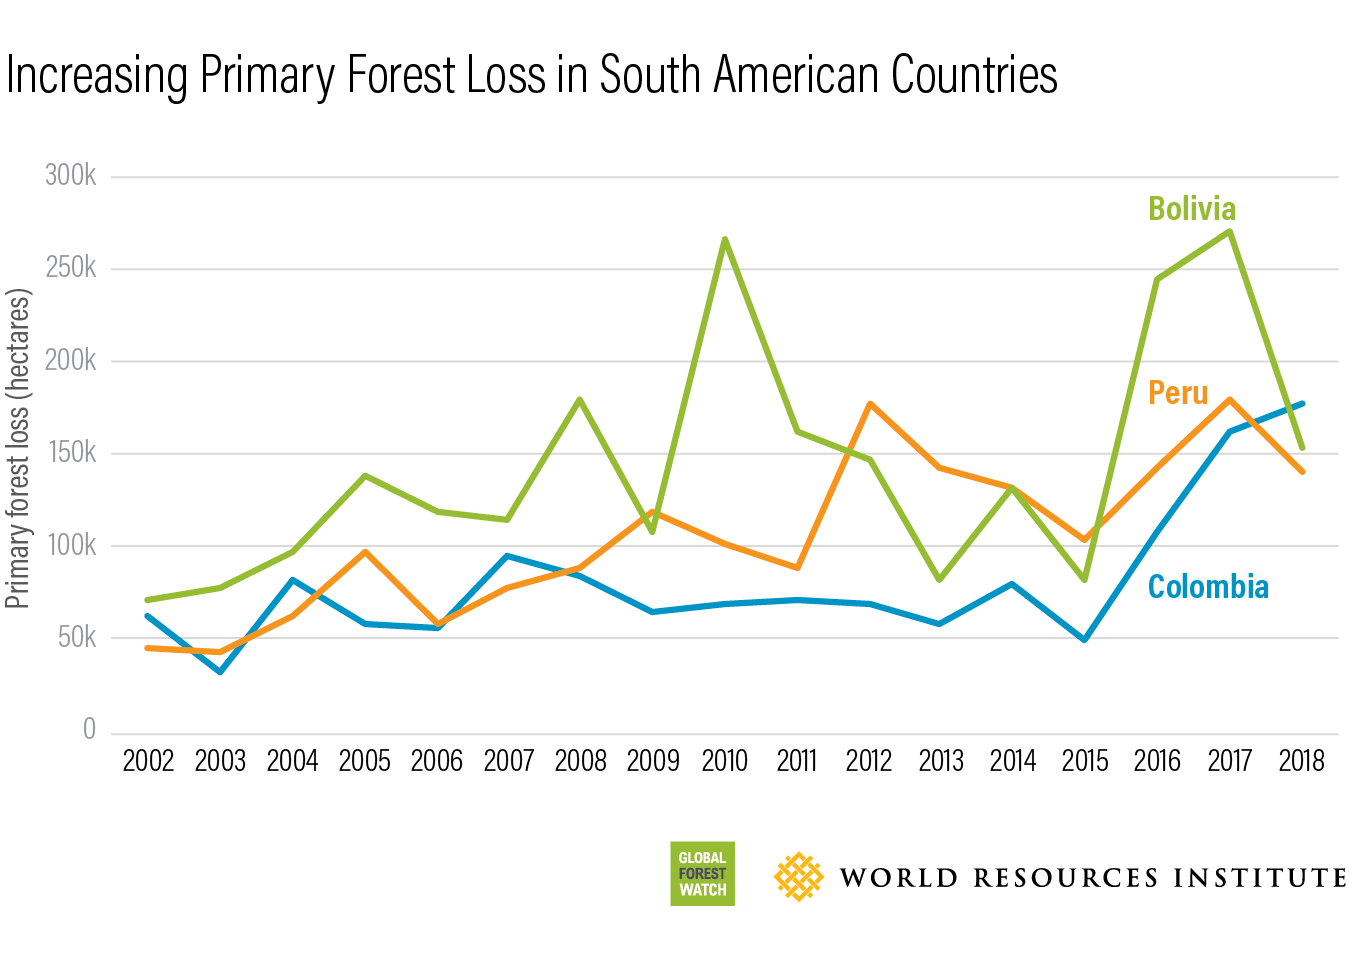 Increasing Primary Forest Loss in South American Countries